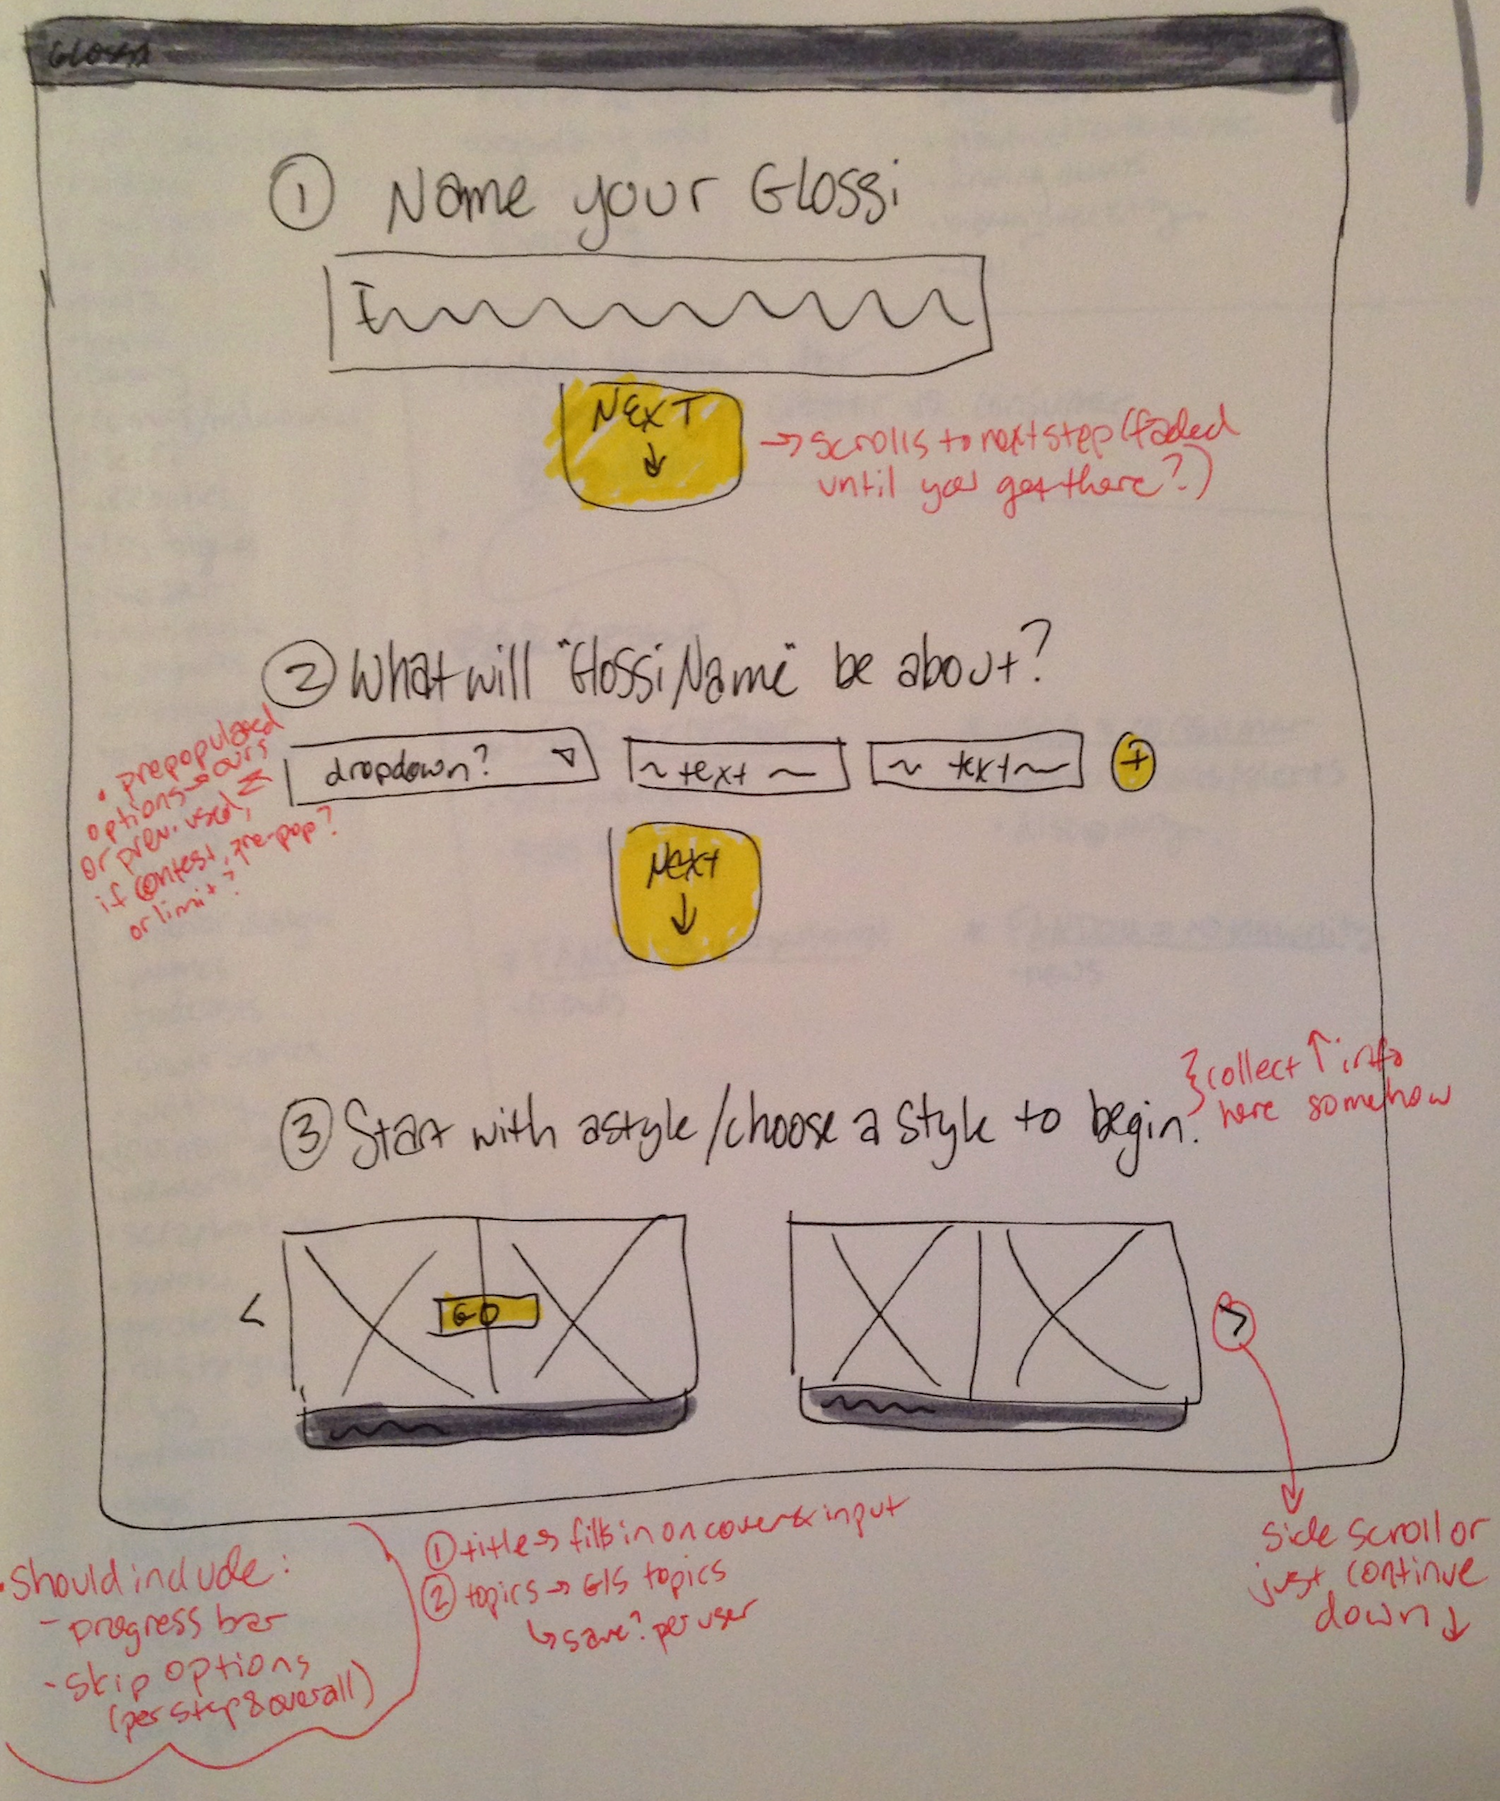 V2 sketch of the onboarding flow